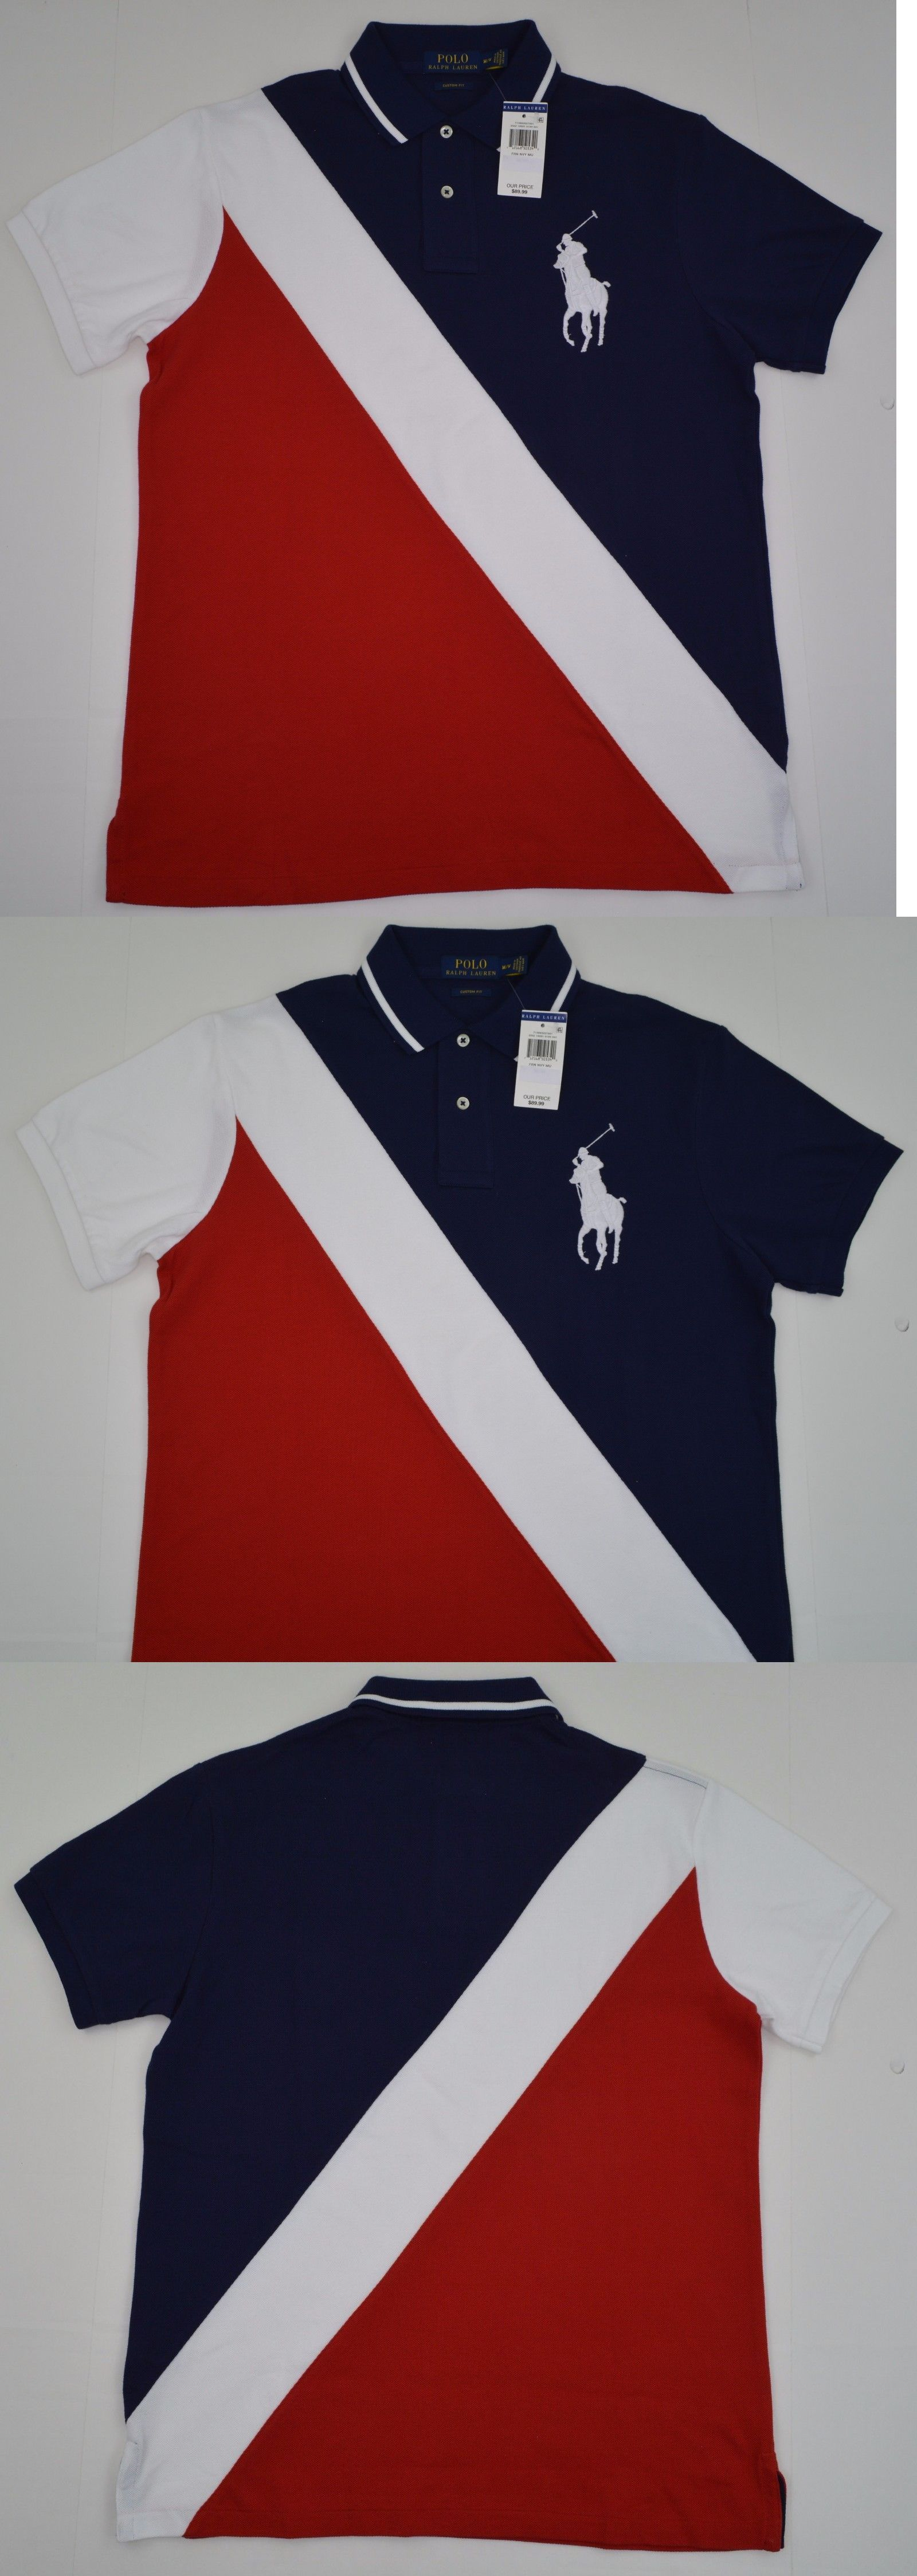 black polo shirts for sale ralph lauren shorts big pony